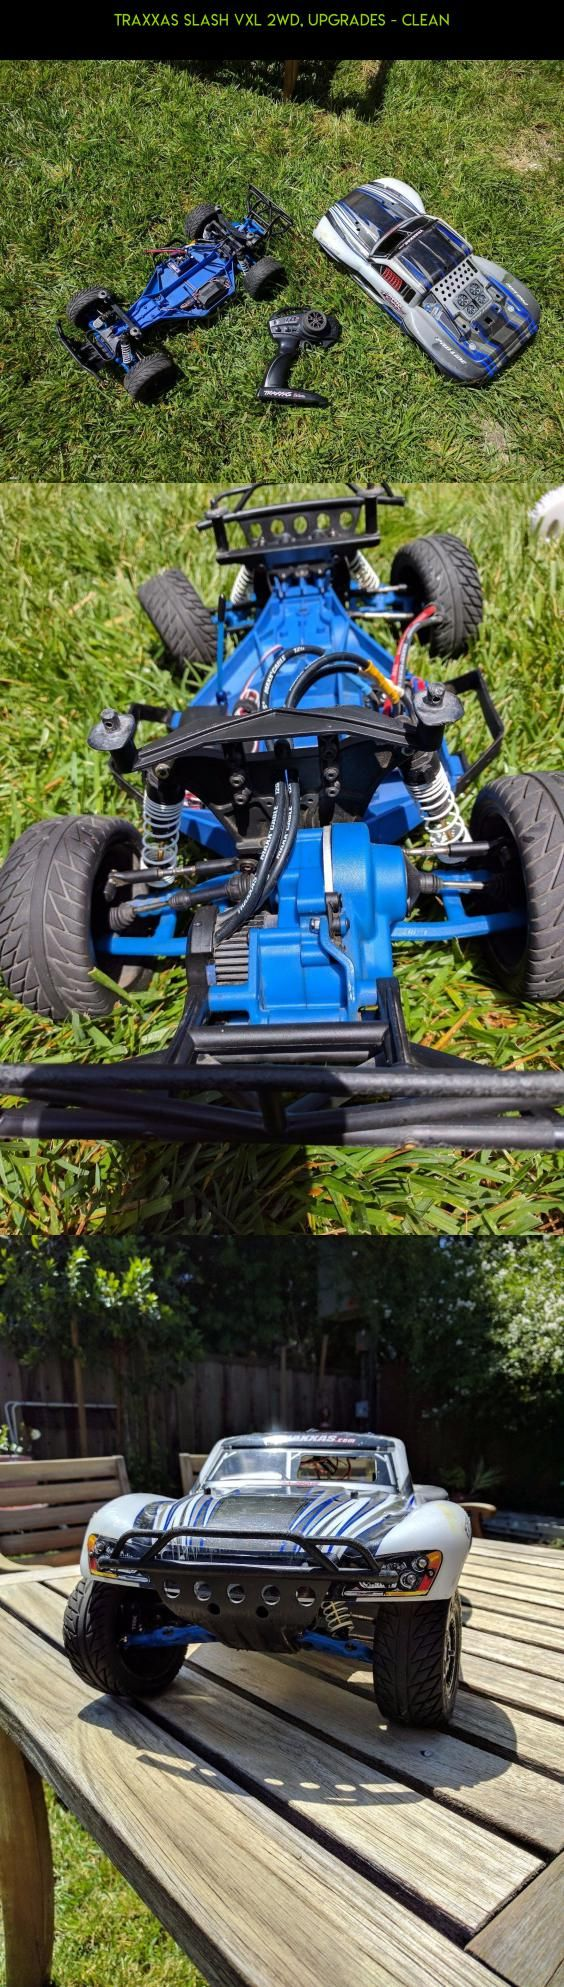 Traxxas Slash VXL 2wd, Upgrades - Clean #upgrades #drone #technology #traxxas #tech #camera #slash #products #shopping #fpv #racing #plans #parts #2wd #kit #gadgets